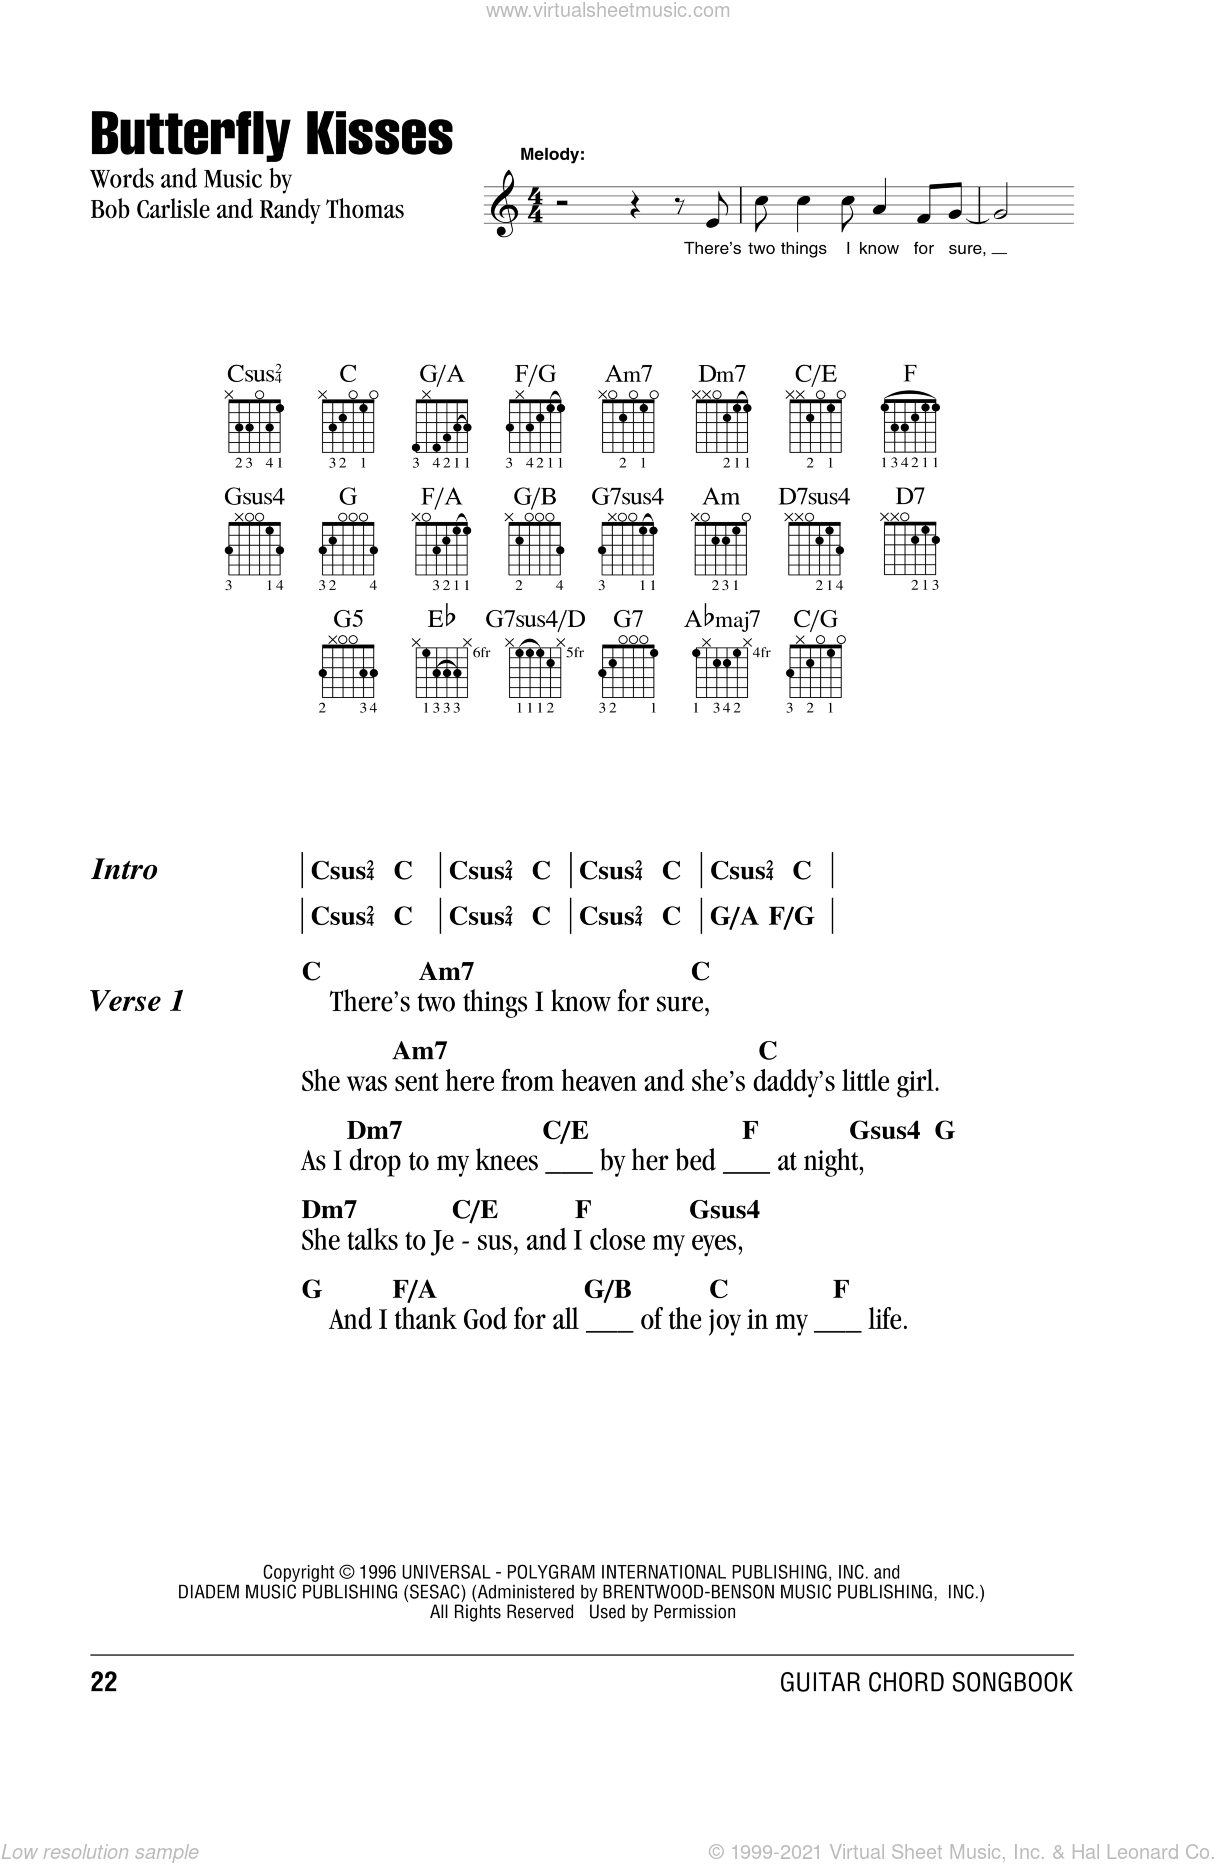 Butterfly Kisses sheet music for guitar (chords) by Randy Thomas